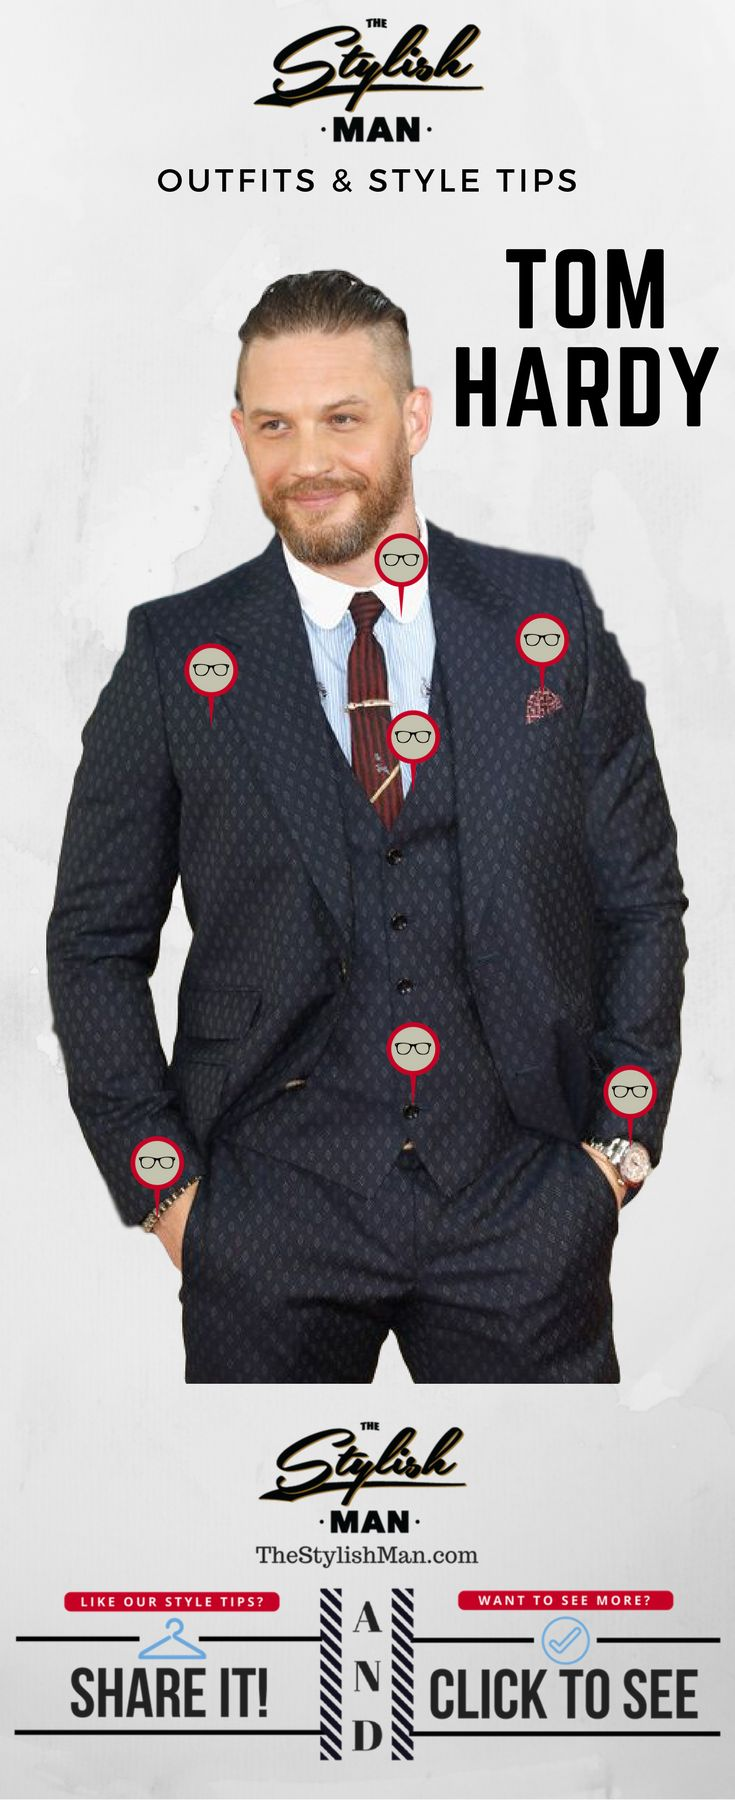 Excuse for a Tom Hardy pic  Too much going on but nice pattern & club collar is interesting.  Outfits and Style Tips: Tom Hardy Three Piece Suit - TheStylishMan.com